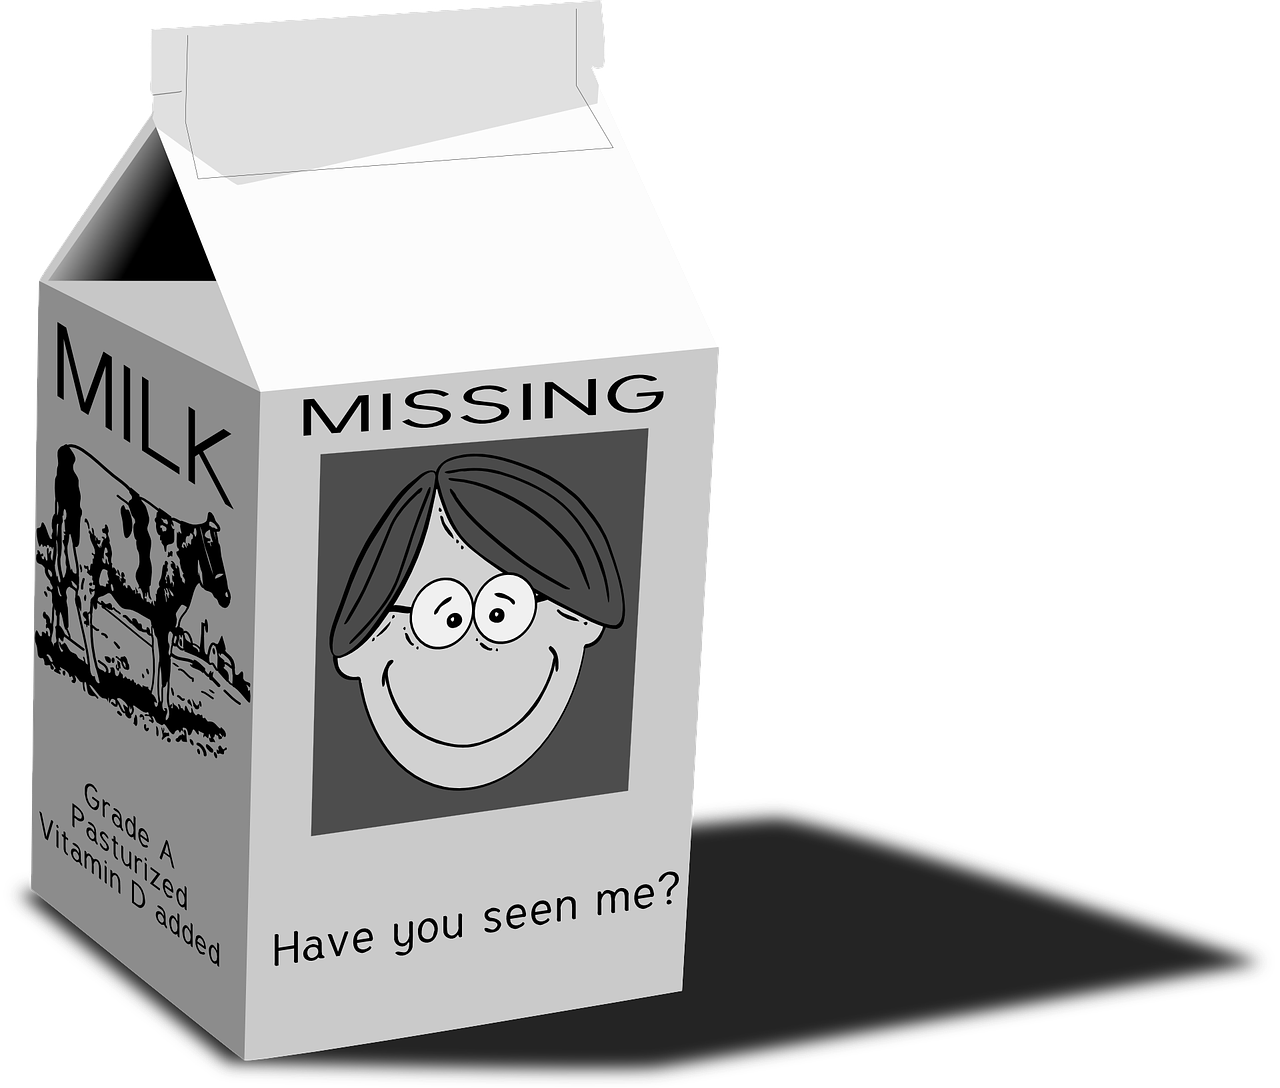 Retrieved from: https://pixabay.com/en/milk-carton-milk-missing-31473/